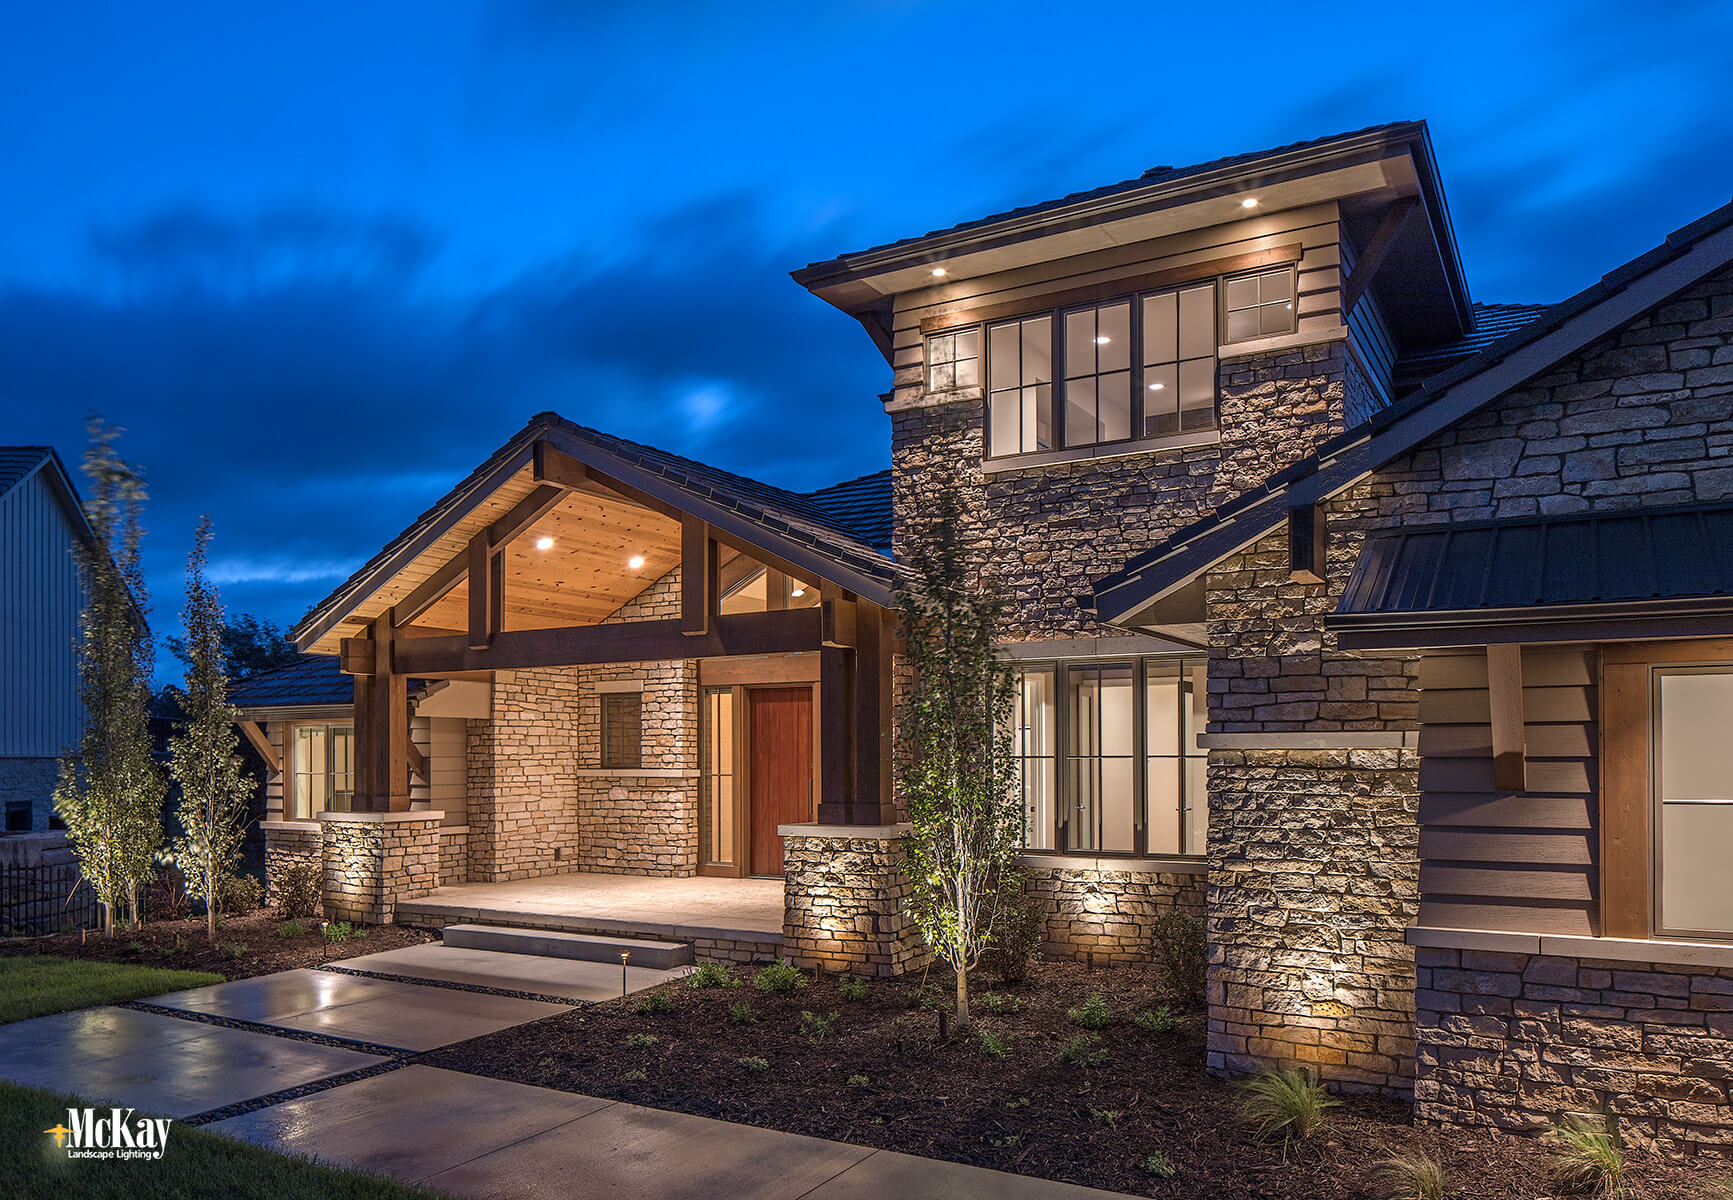 Placing lights on either side of the porch elegantly illuminate the stonework and wood detailing while marking the front entry at the same time.  Click to learn more about the landscape lighting design...   McKay Lighting - Omaha Nebraska